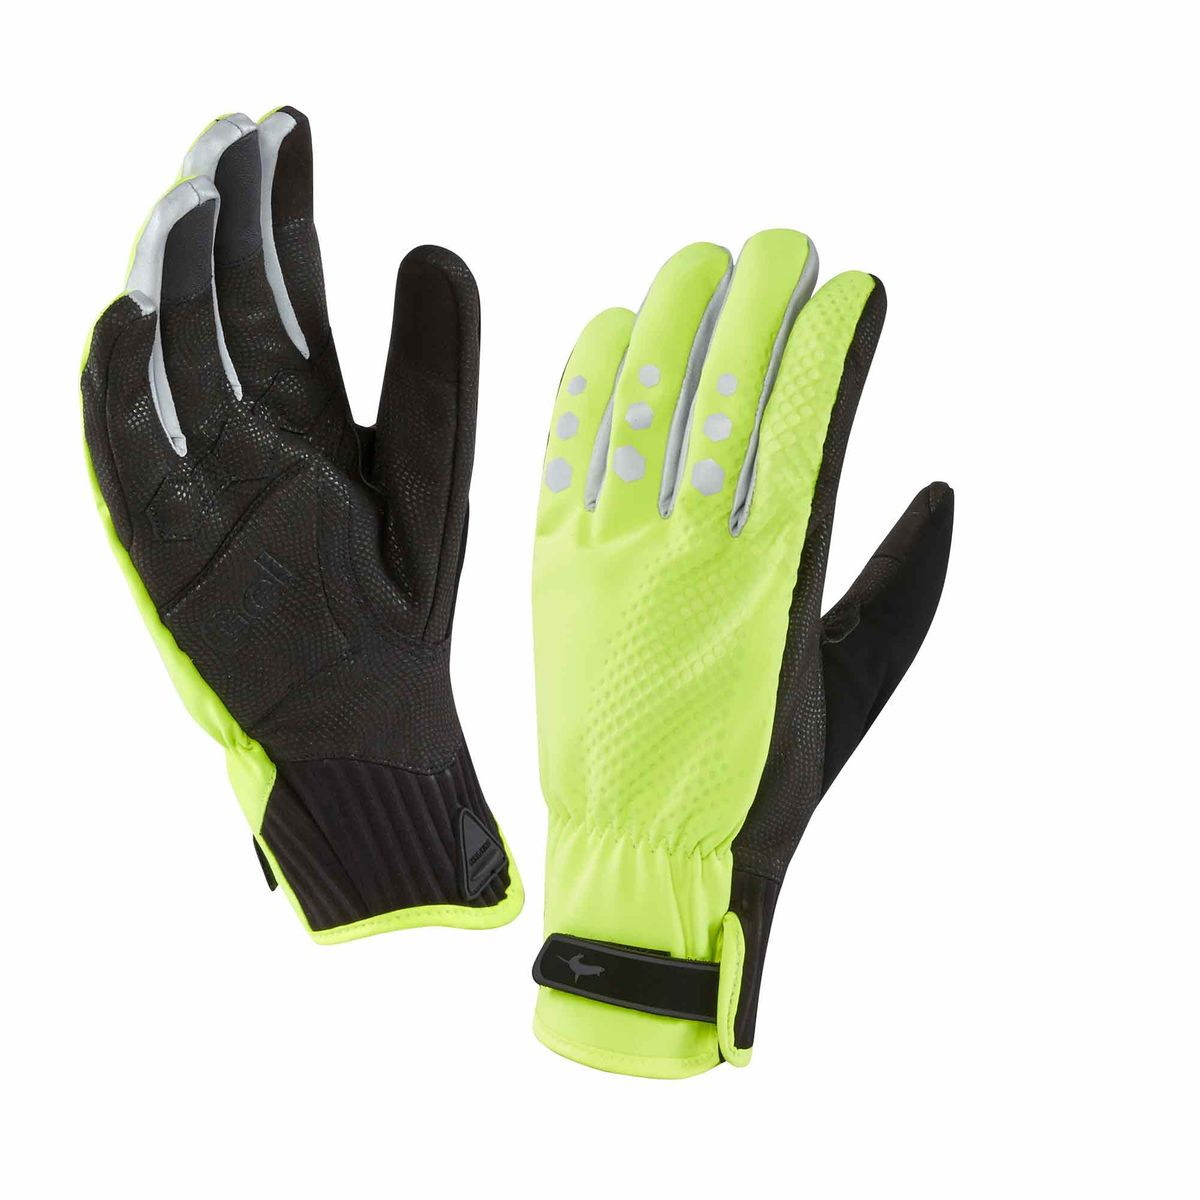 ALL WEATHER CYCLE gloves